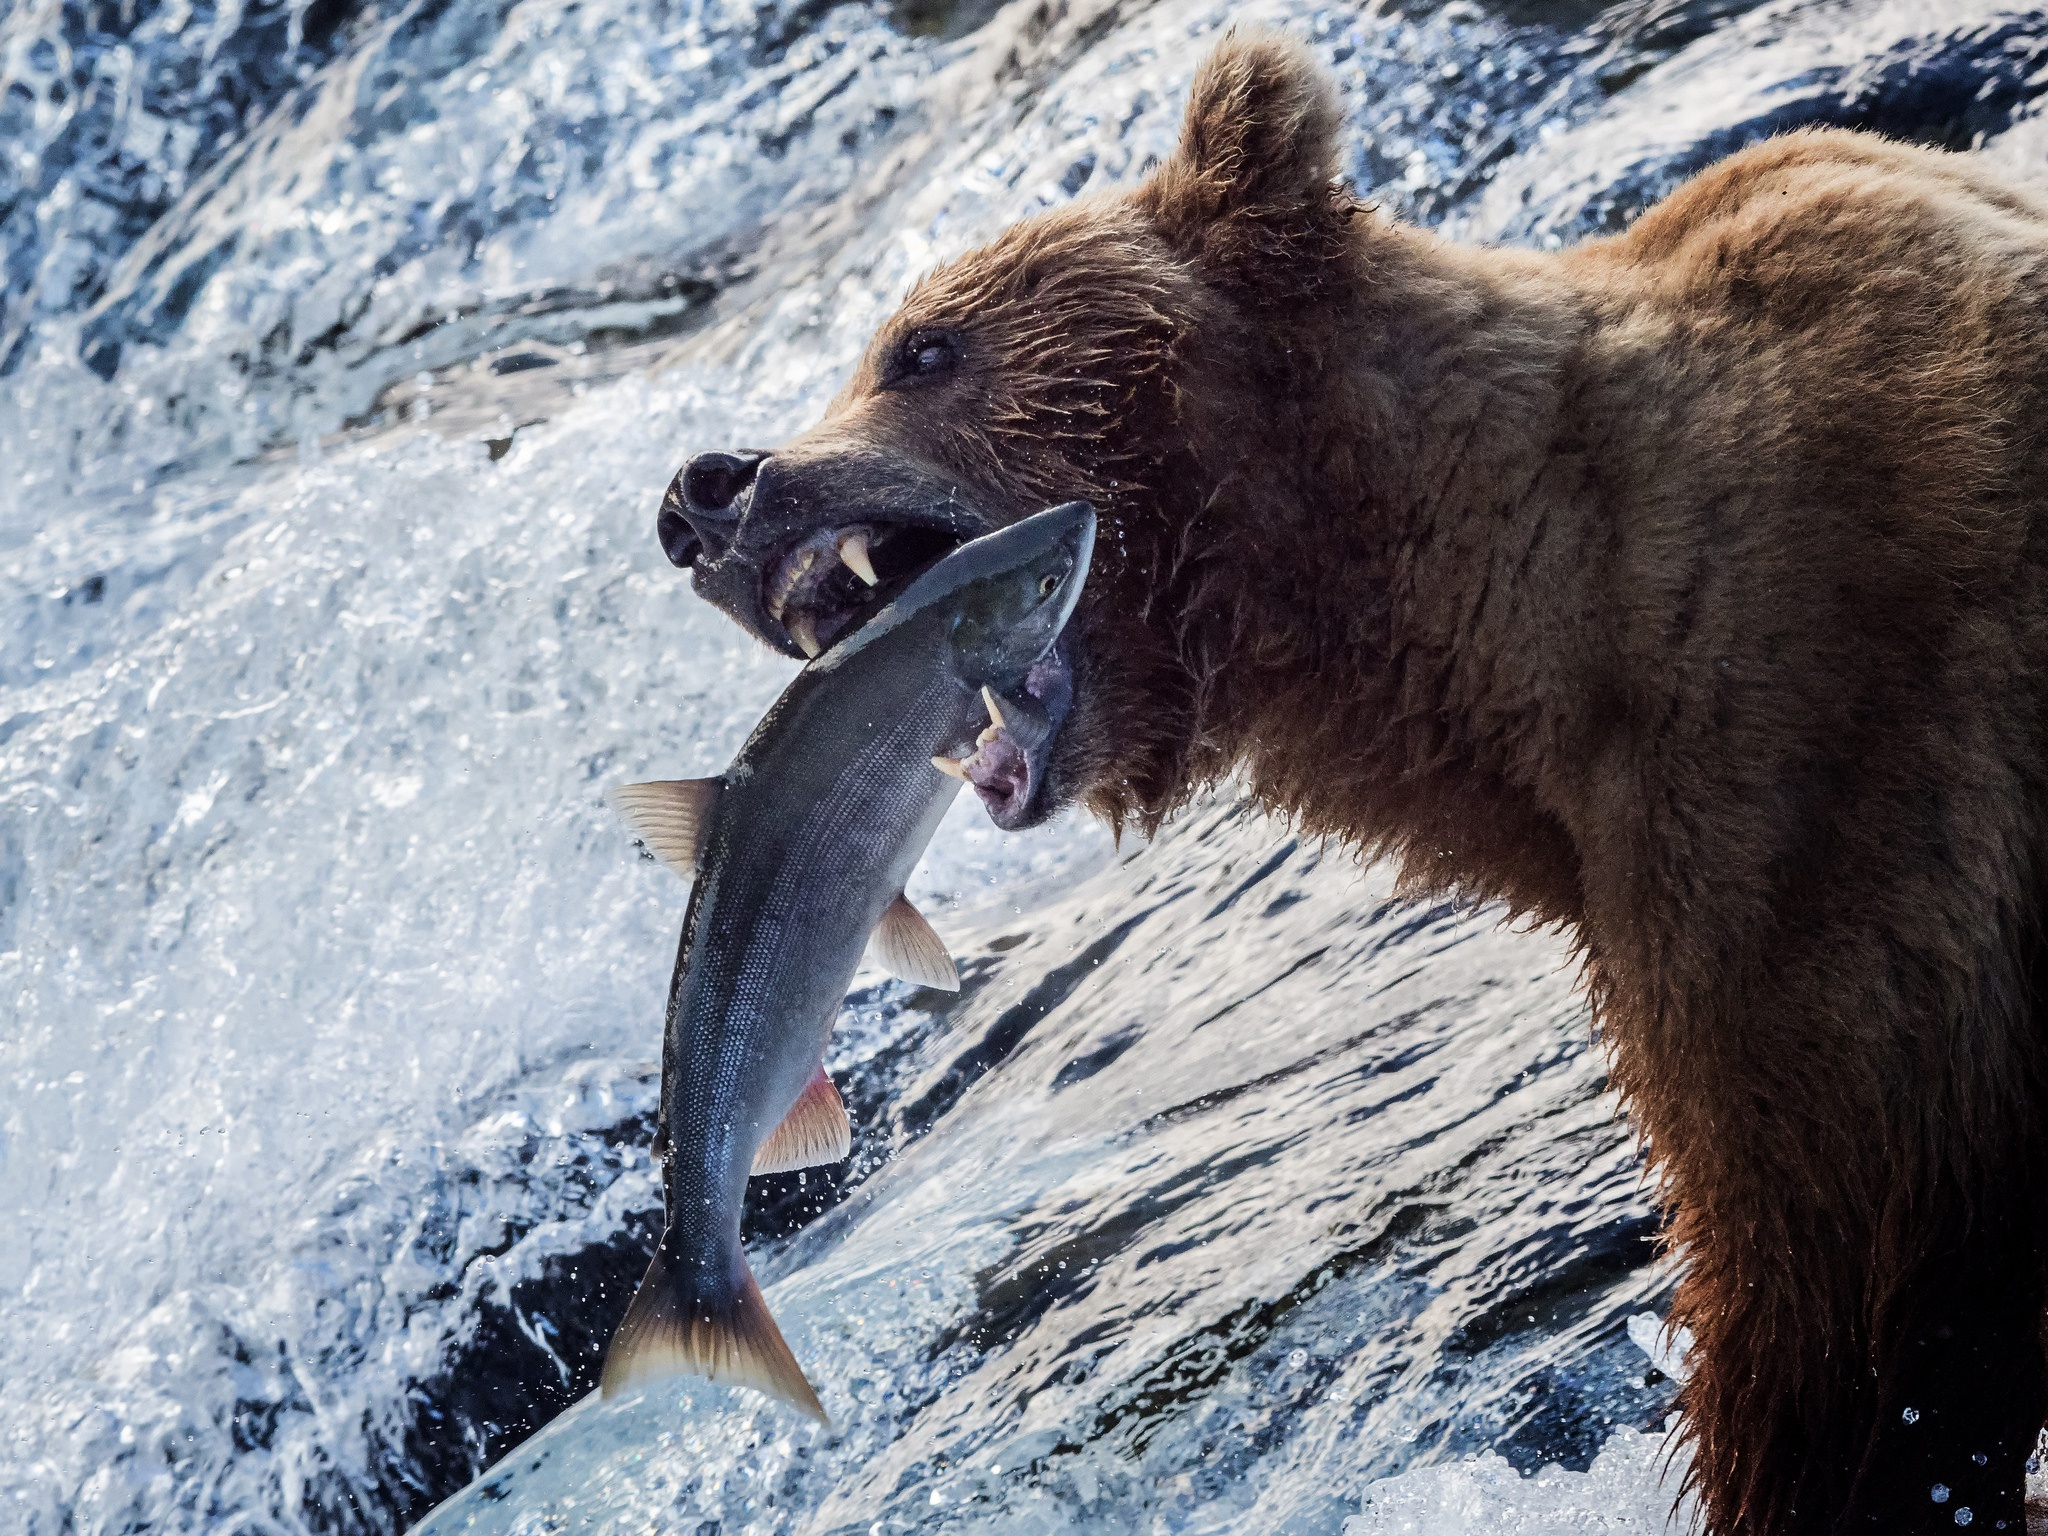 Bears Catching Salmon Images, Stock Photos Vectors Shutterstock Pictures of bears fishing